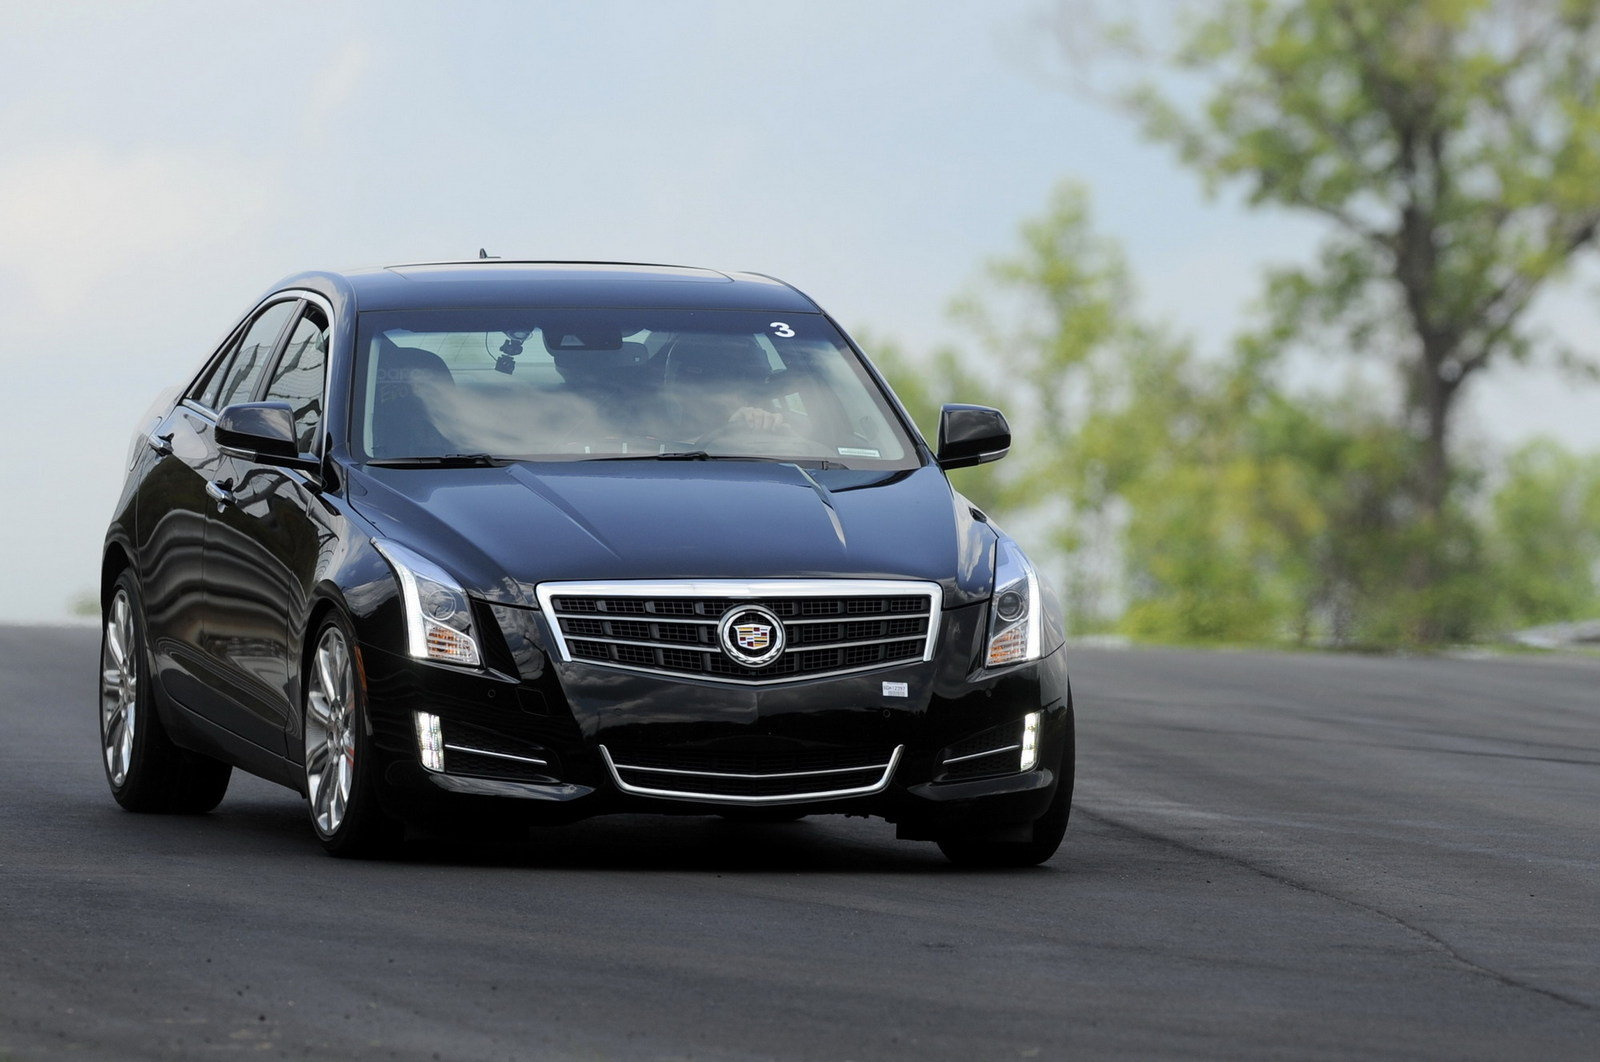 2013 cadillac ats picture 454729 car review top speed. Black Bedroom Furniture Sets. Home Design Ideas